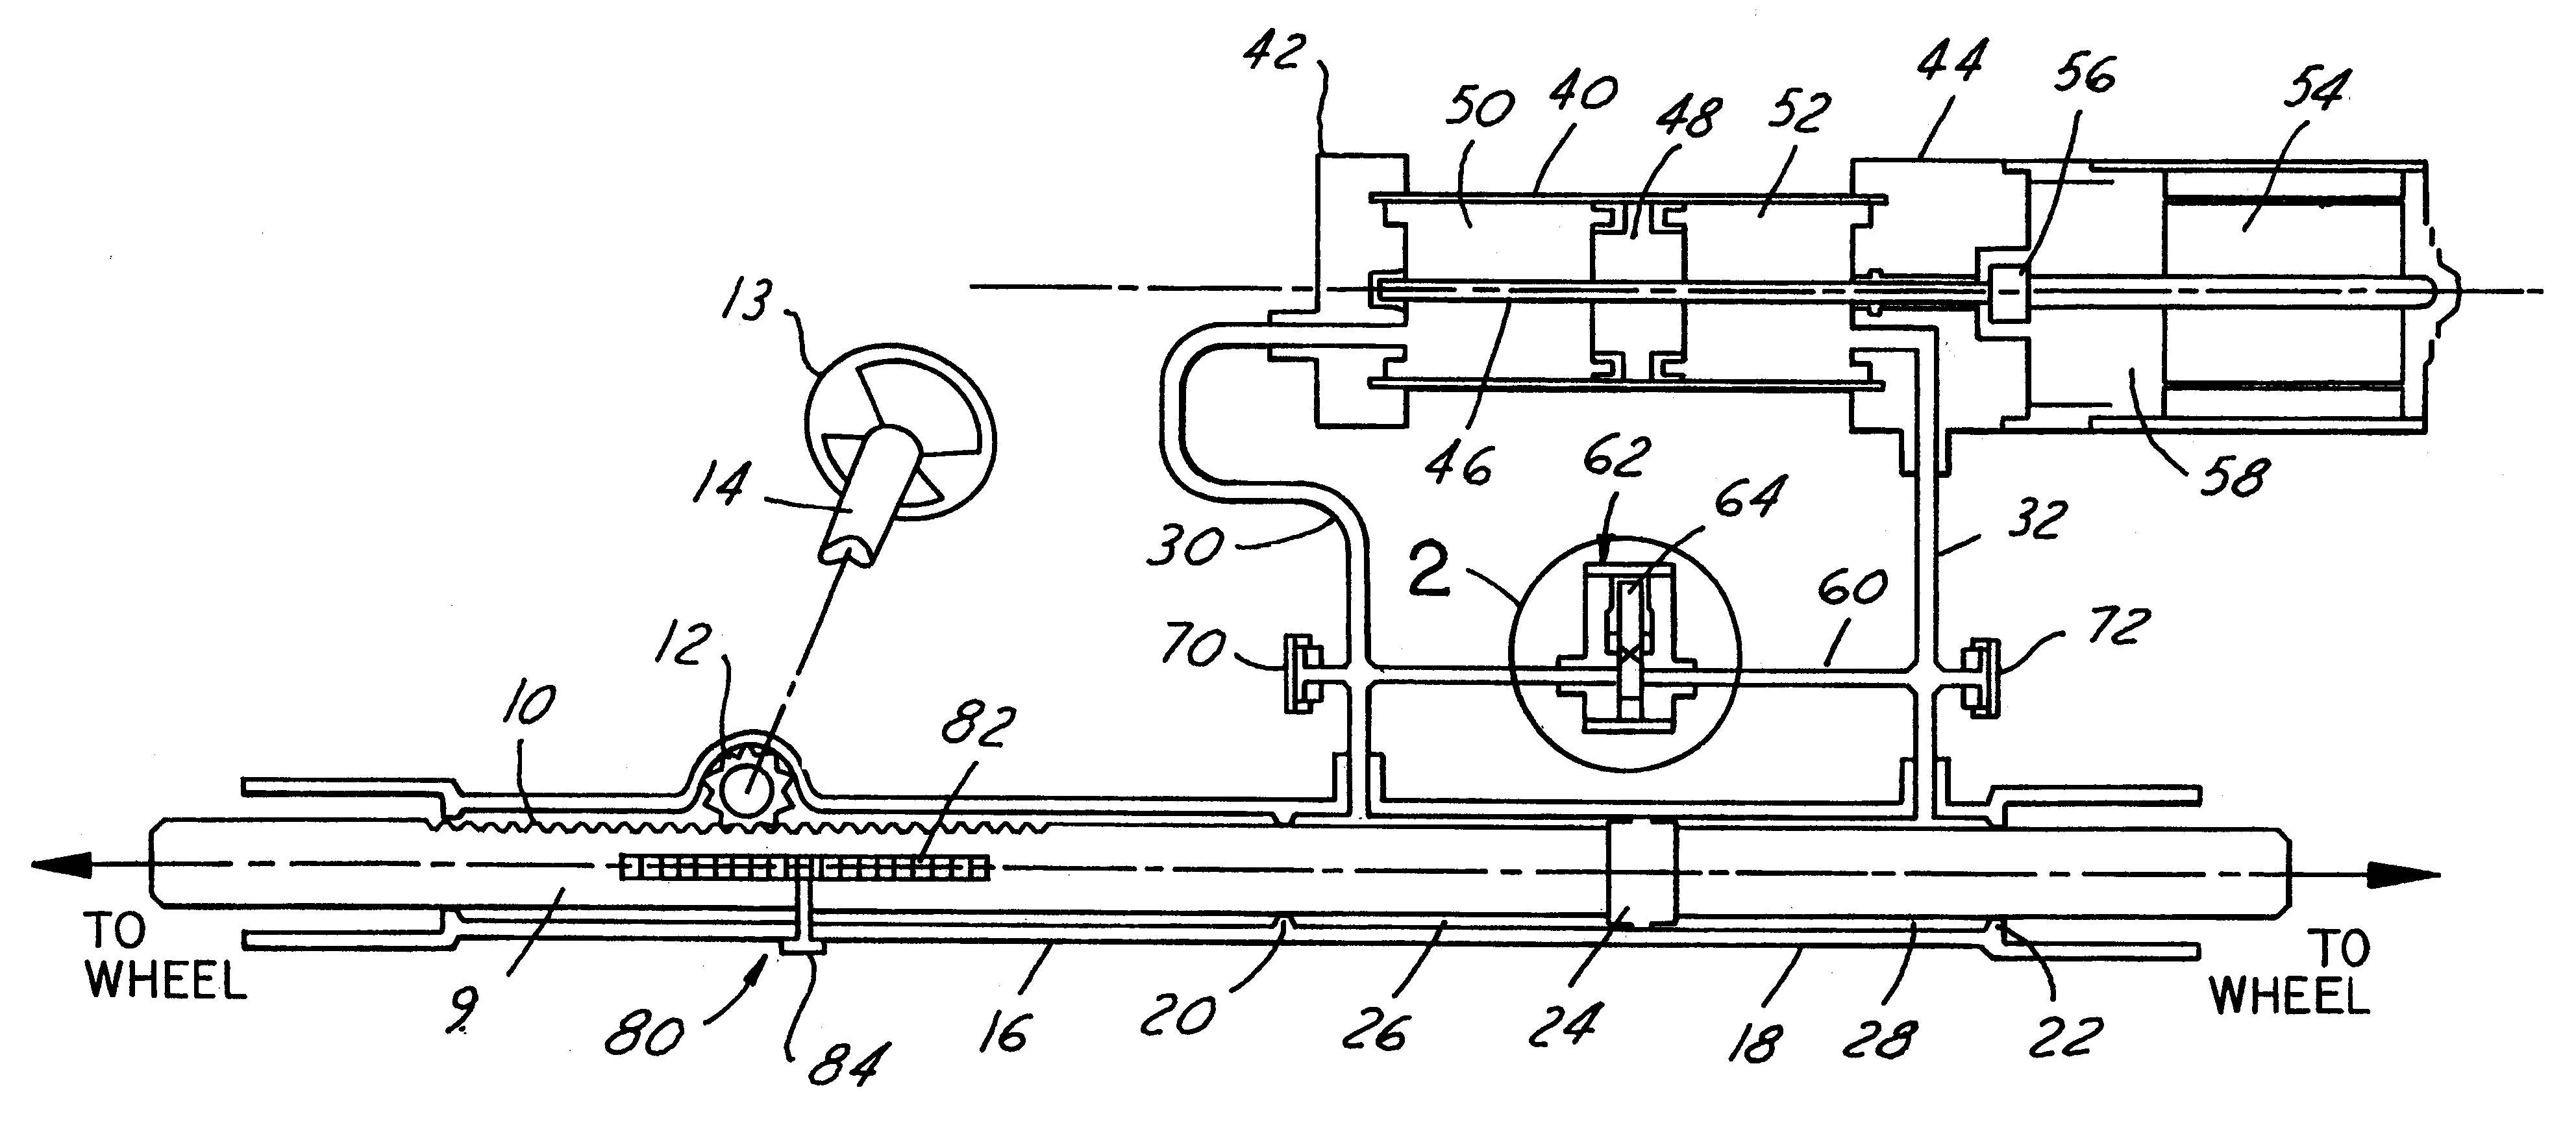 patent us6298941 - electro-hydraulic power steering system